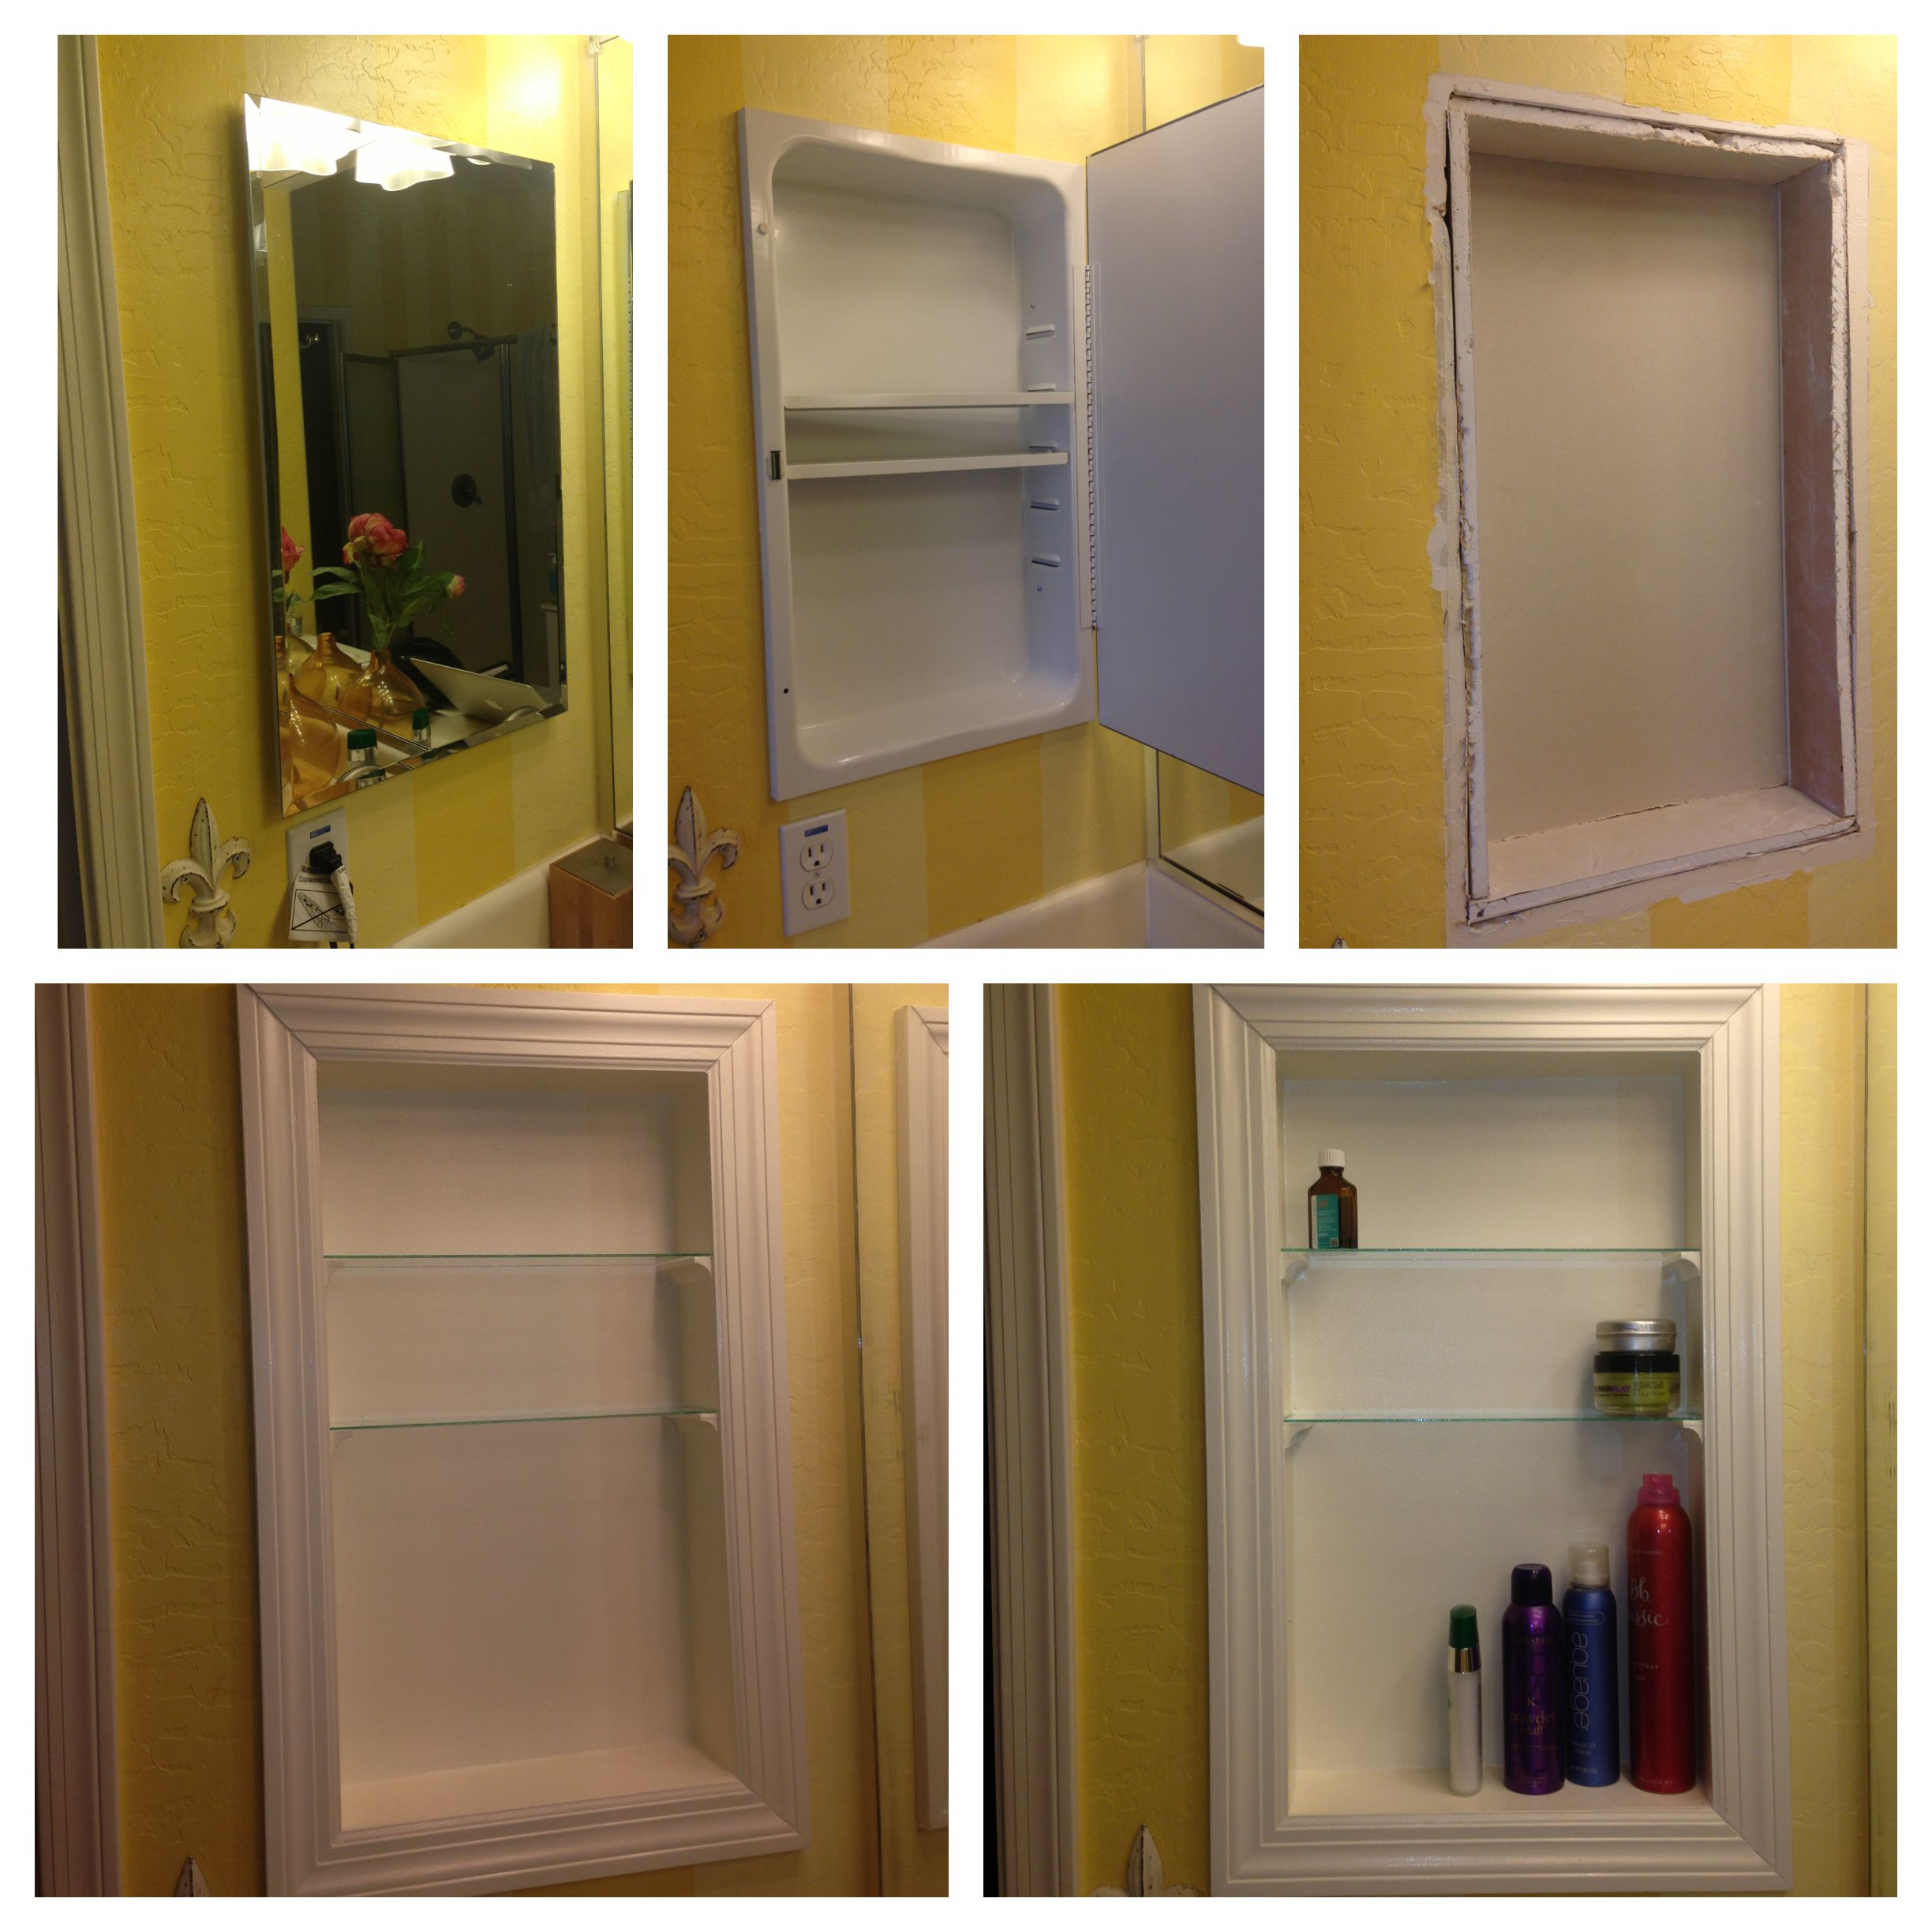 Converted Metal Medicine Cabinet Into Open Shelves Old Medicine Cabinets Diy Bathroom Medicine Cabinet Shelves